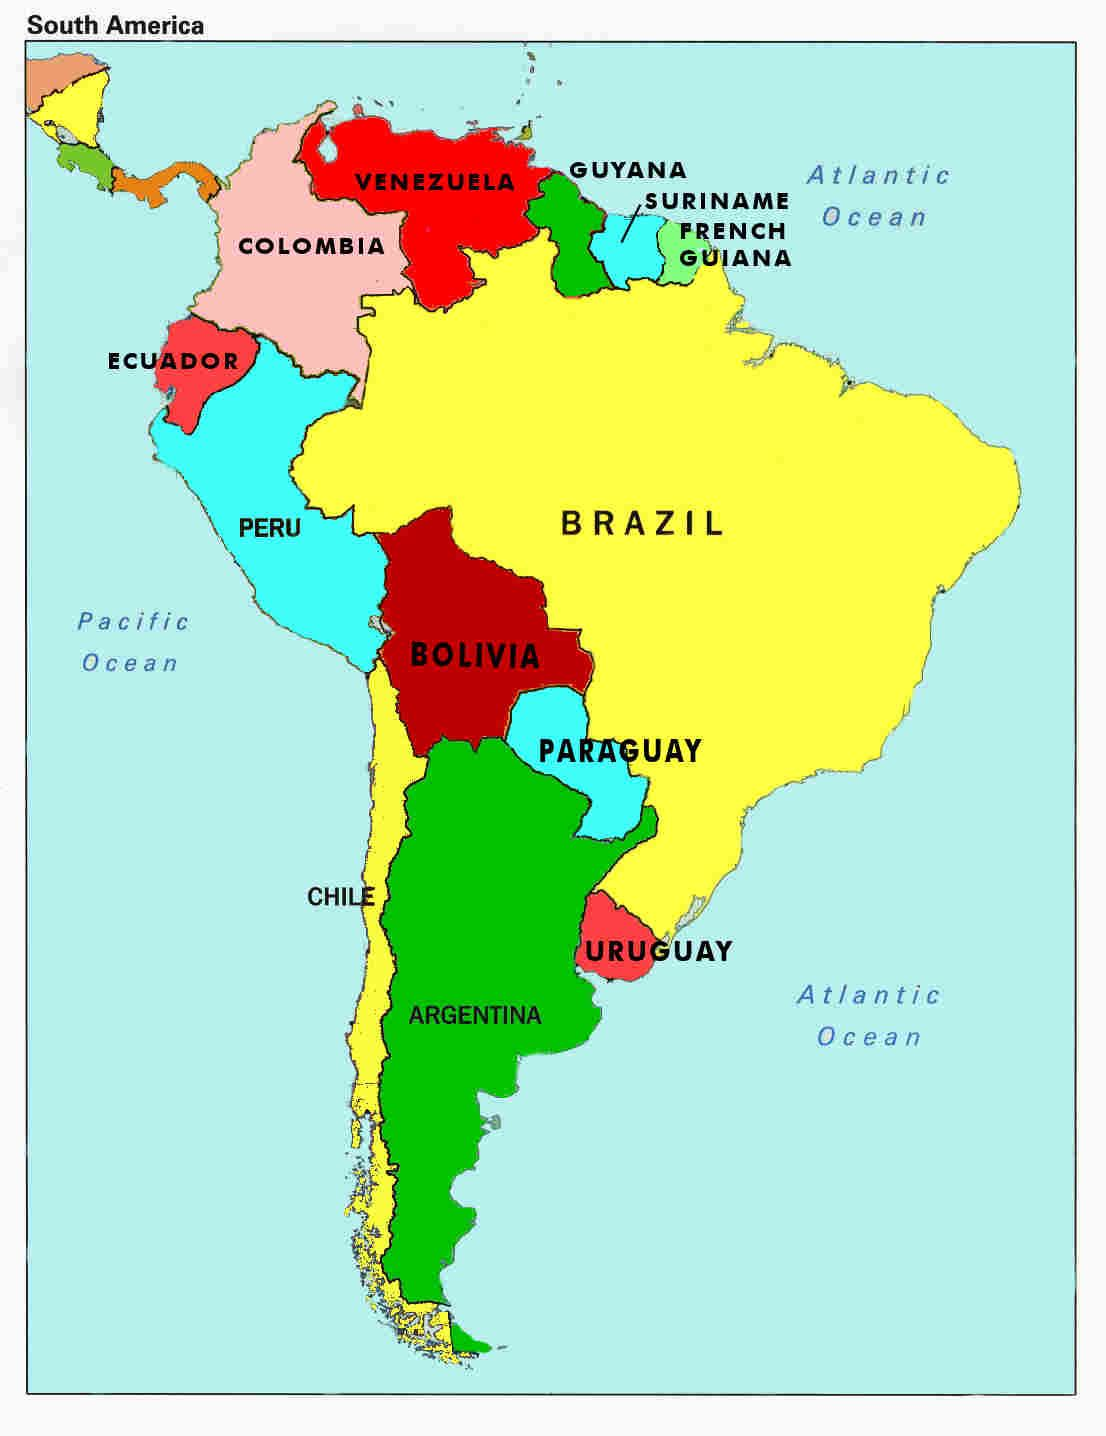 South America Labeled Map map of south america countries and capitals | Map of South America